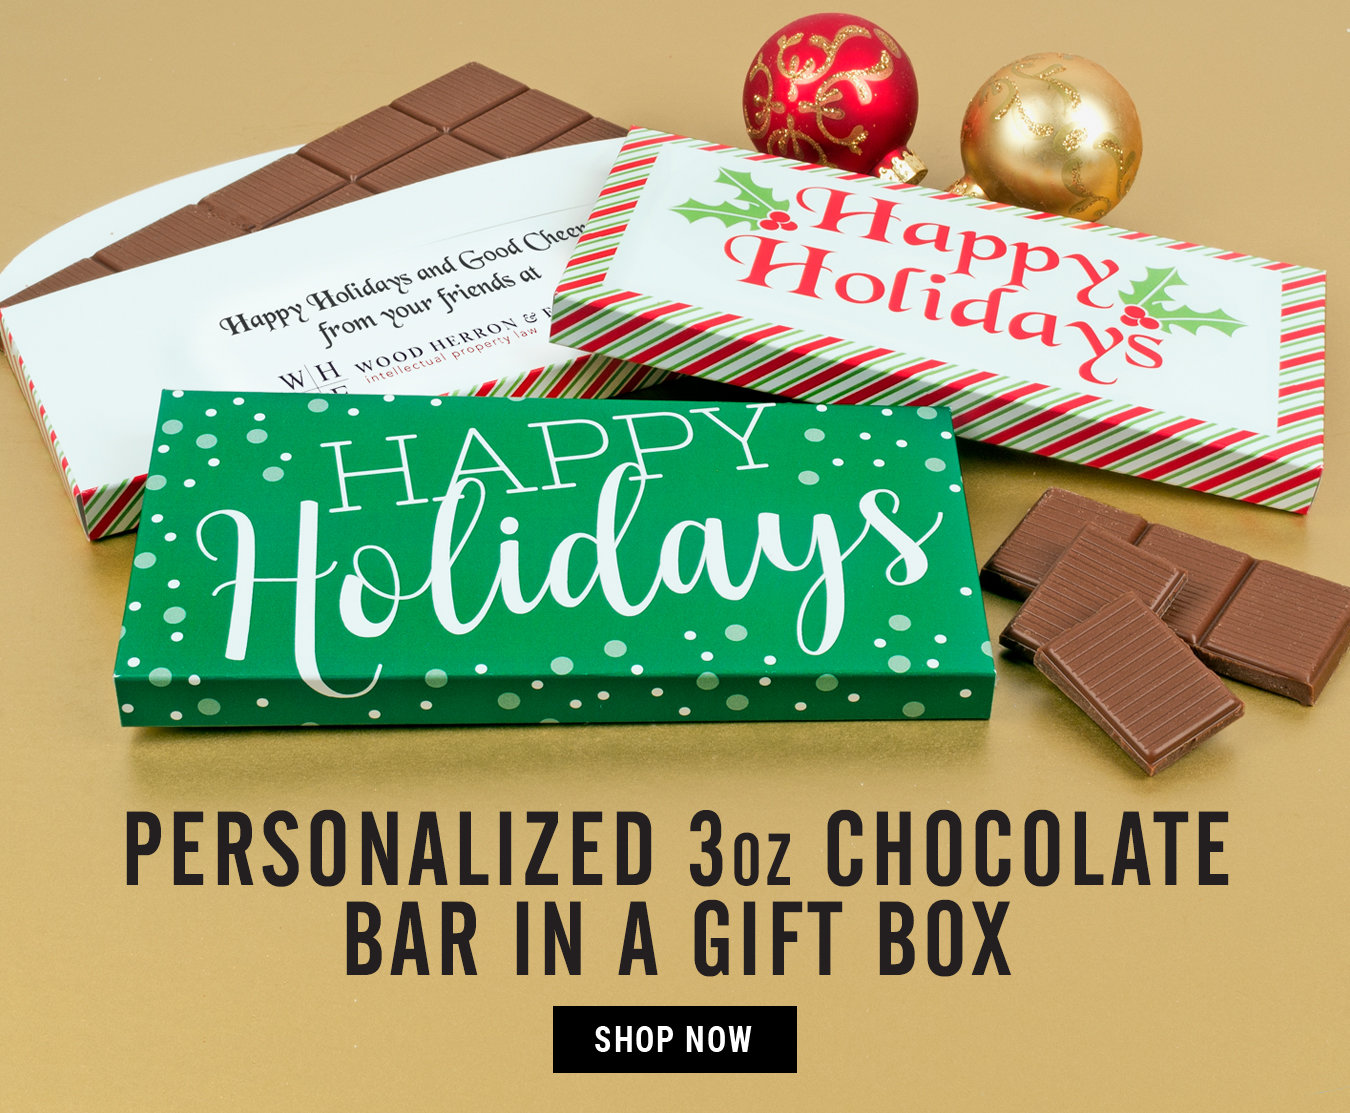 3oz Chocolate Bar in a Gift Box